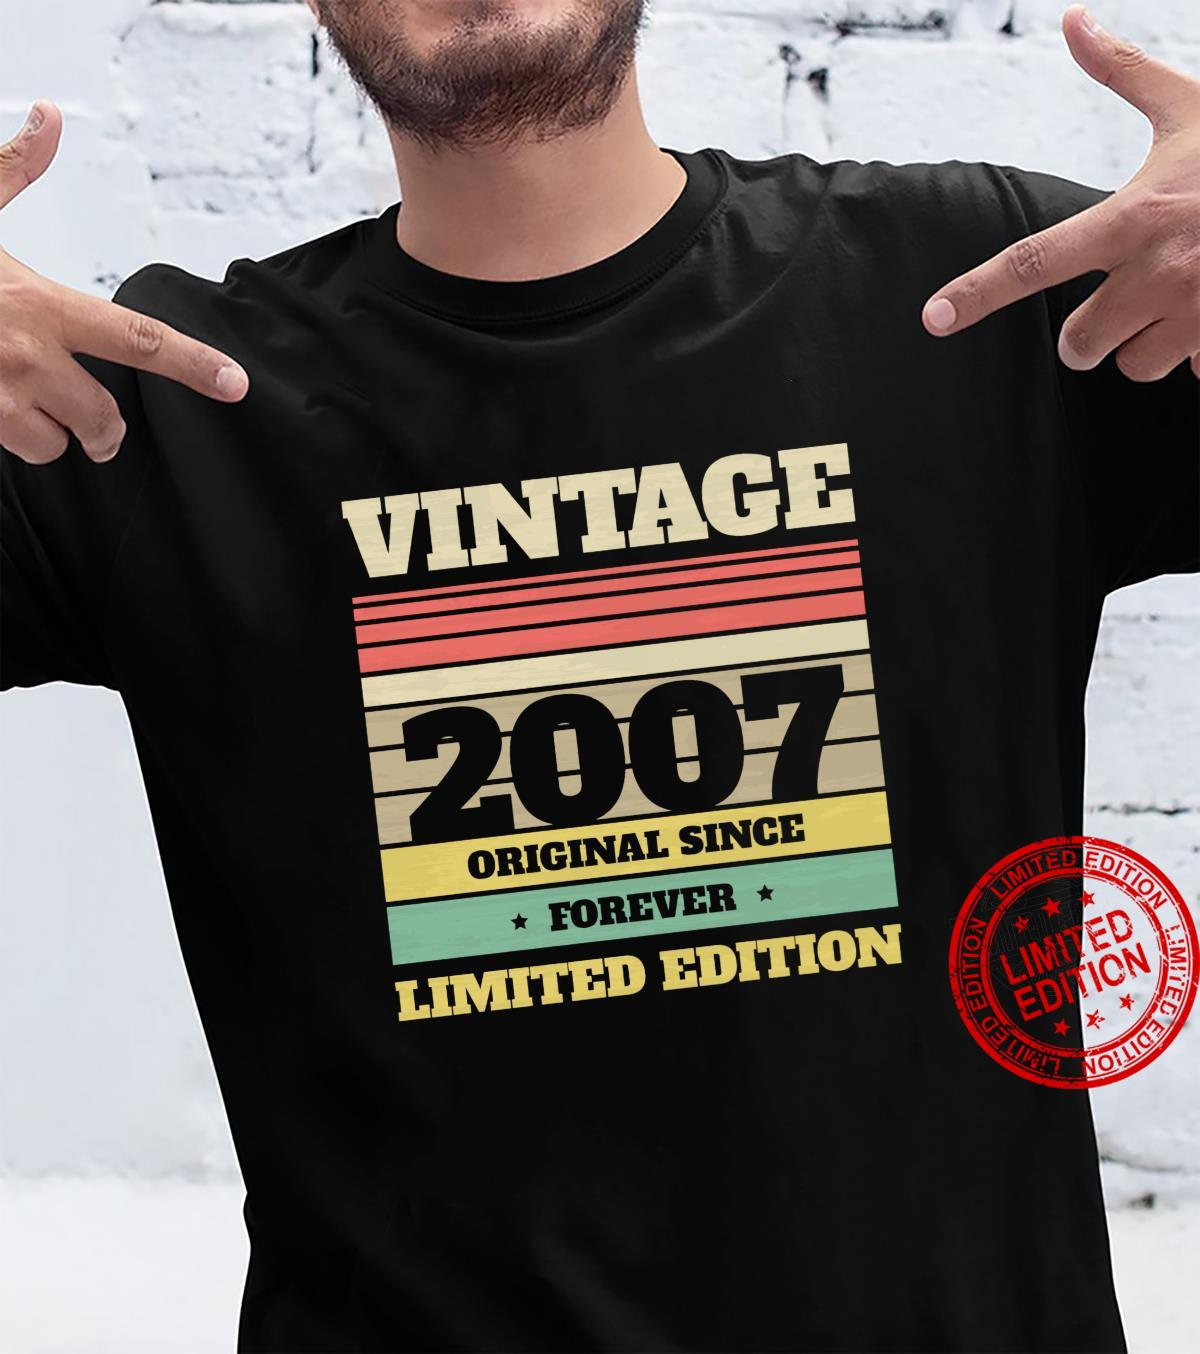 Vintage 2017 Birthday Limited Edition 13 Years Old in 2020 Shirt